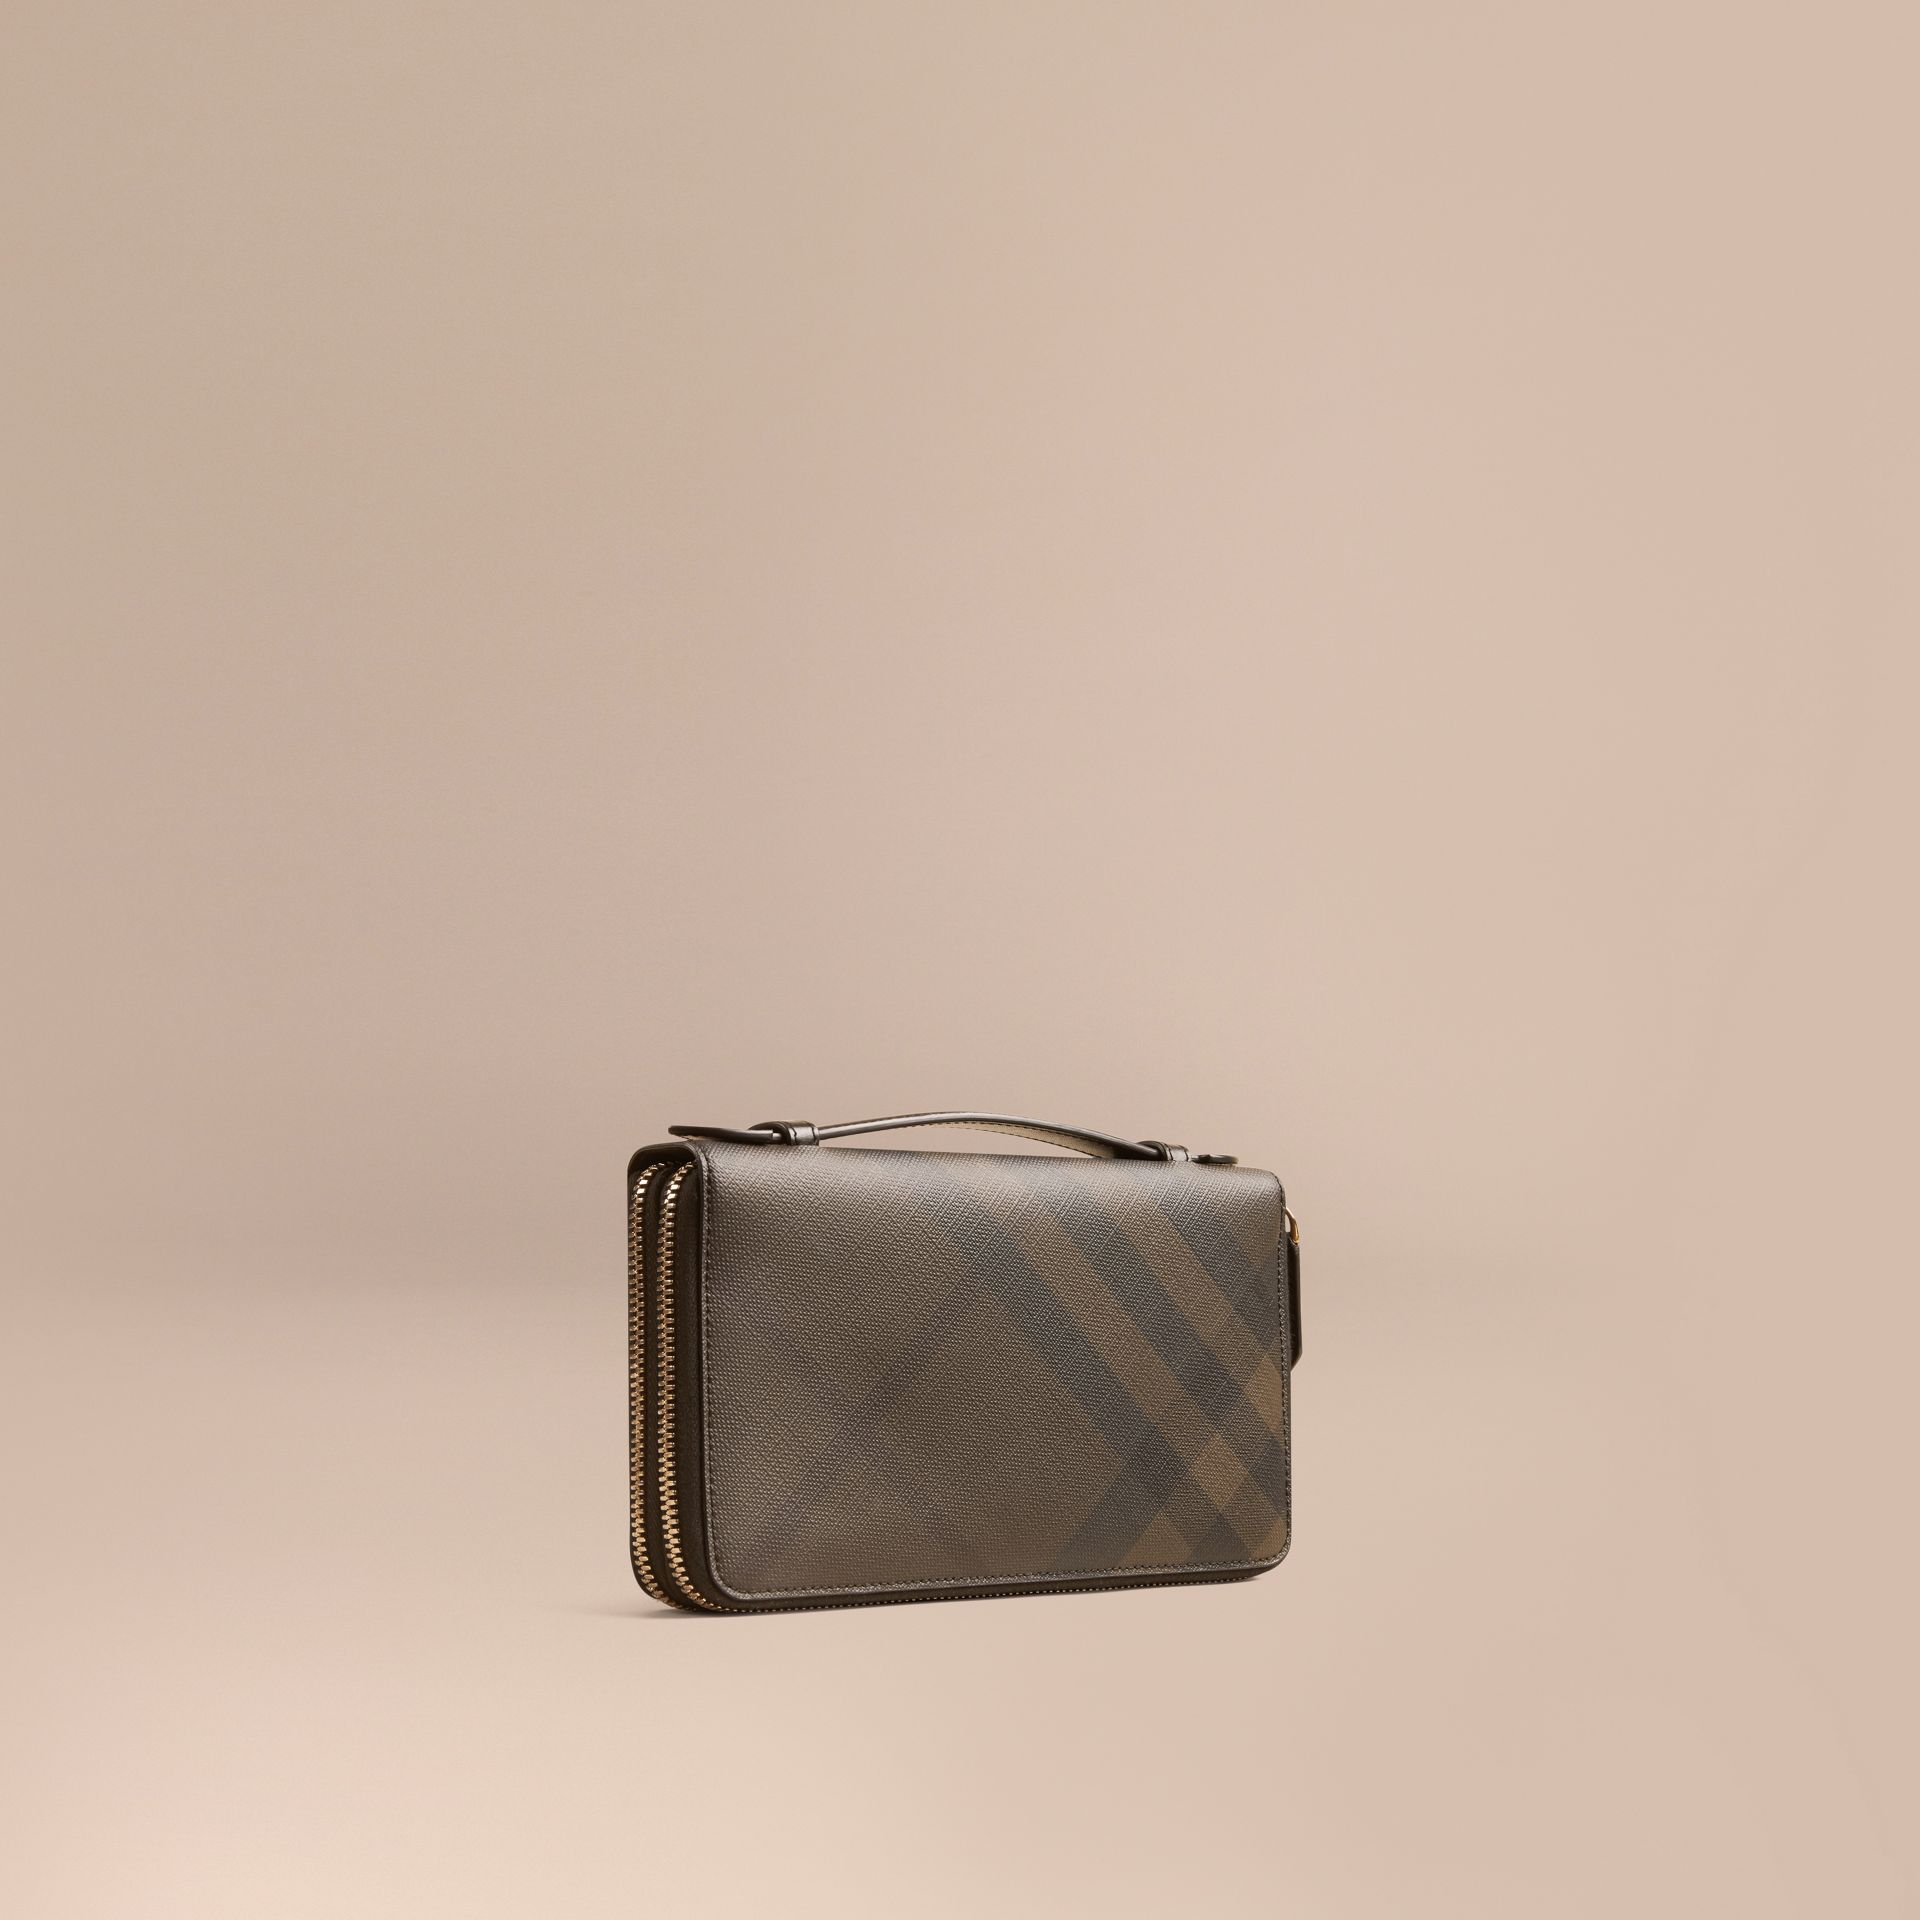 London Check Travel Wallet in Chocolate/black - Men | Burberry Australia - gallery image 1